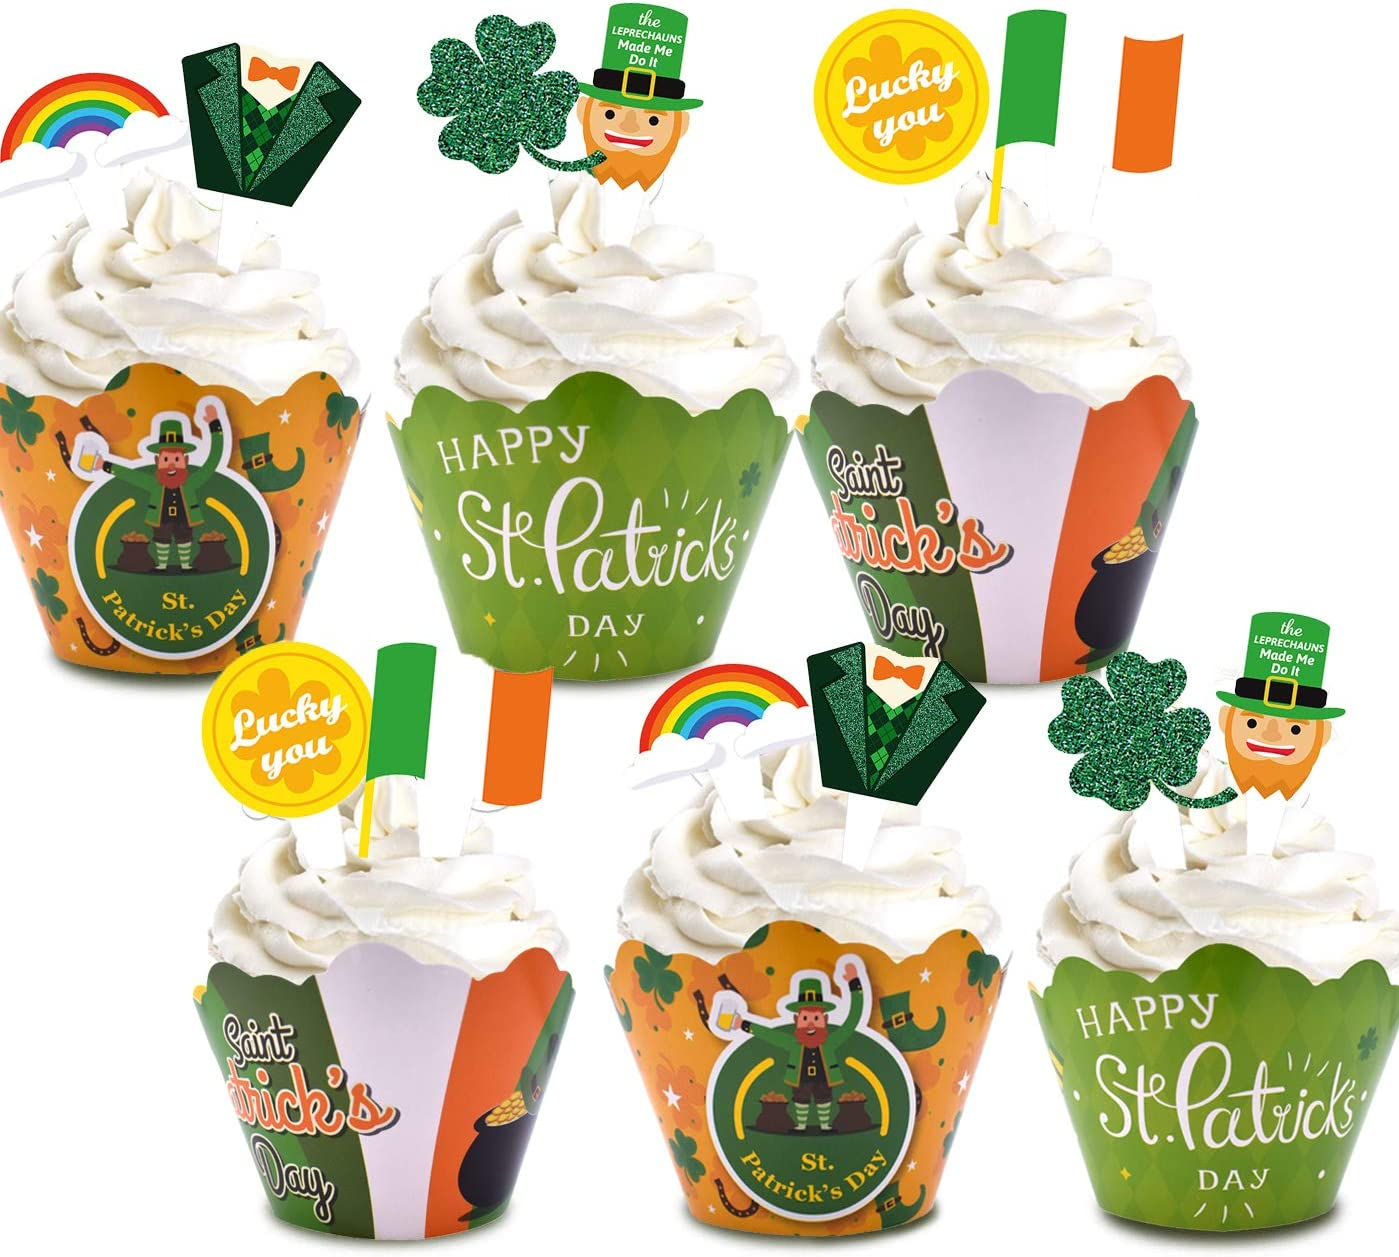 St. Patricks Day Cupcake Wrappers and Toppers - Saint Patrick's Day 48PCS Shamrock Cupcake Liners and Cupcake Picks, Paper Cups for Irish Festival Luck Party Supplies, Decoration Gift